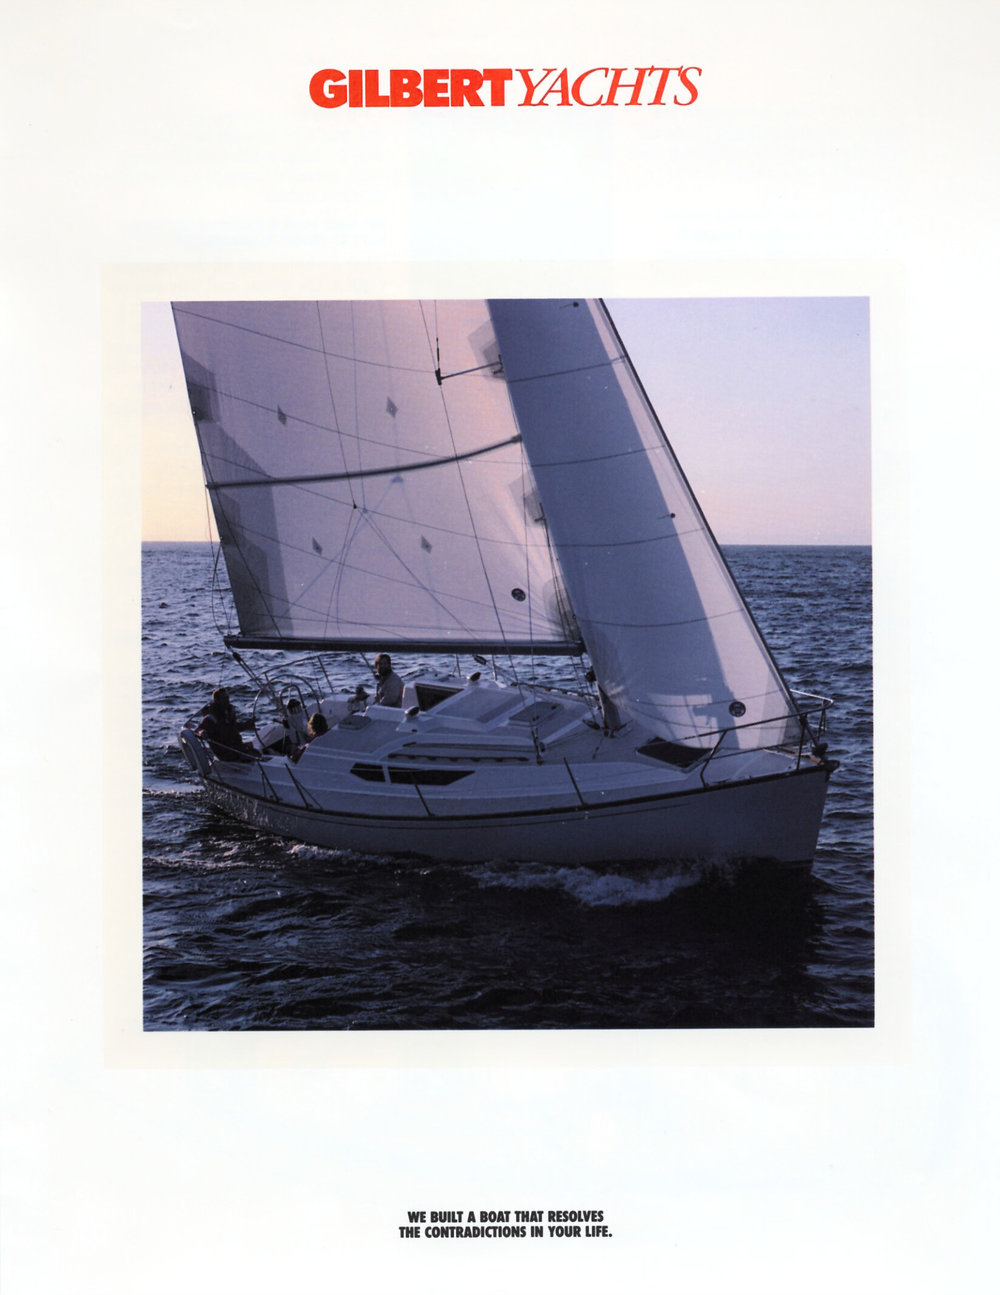 Gilbert Yachts Marketing [yes, that was a family company]